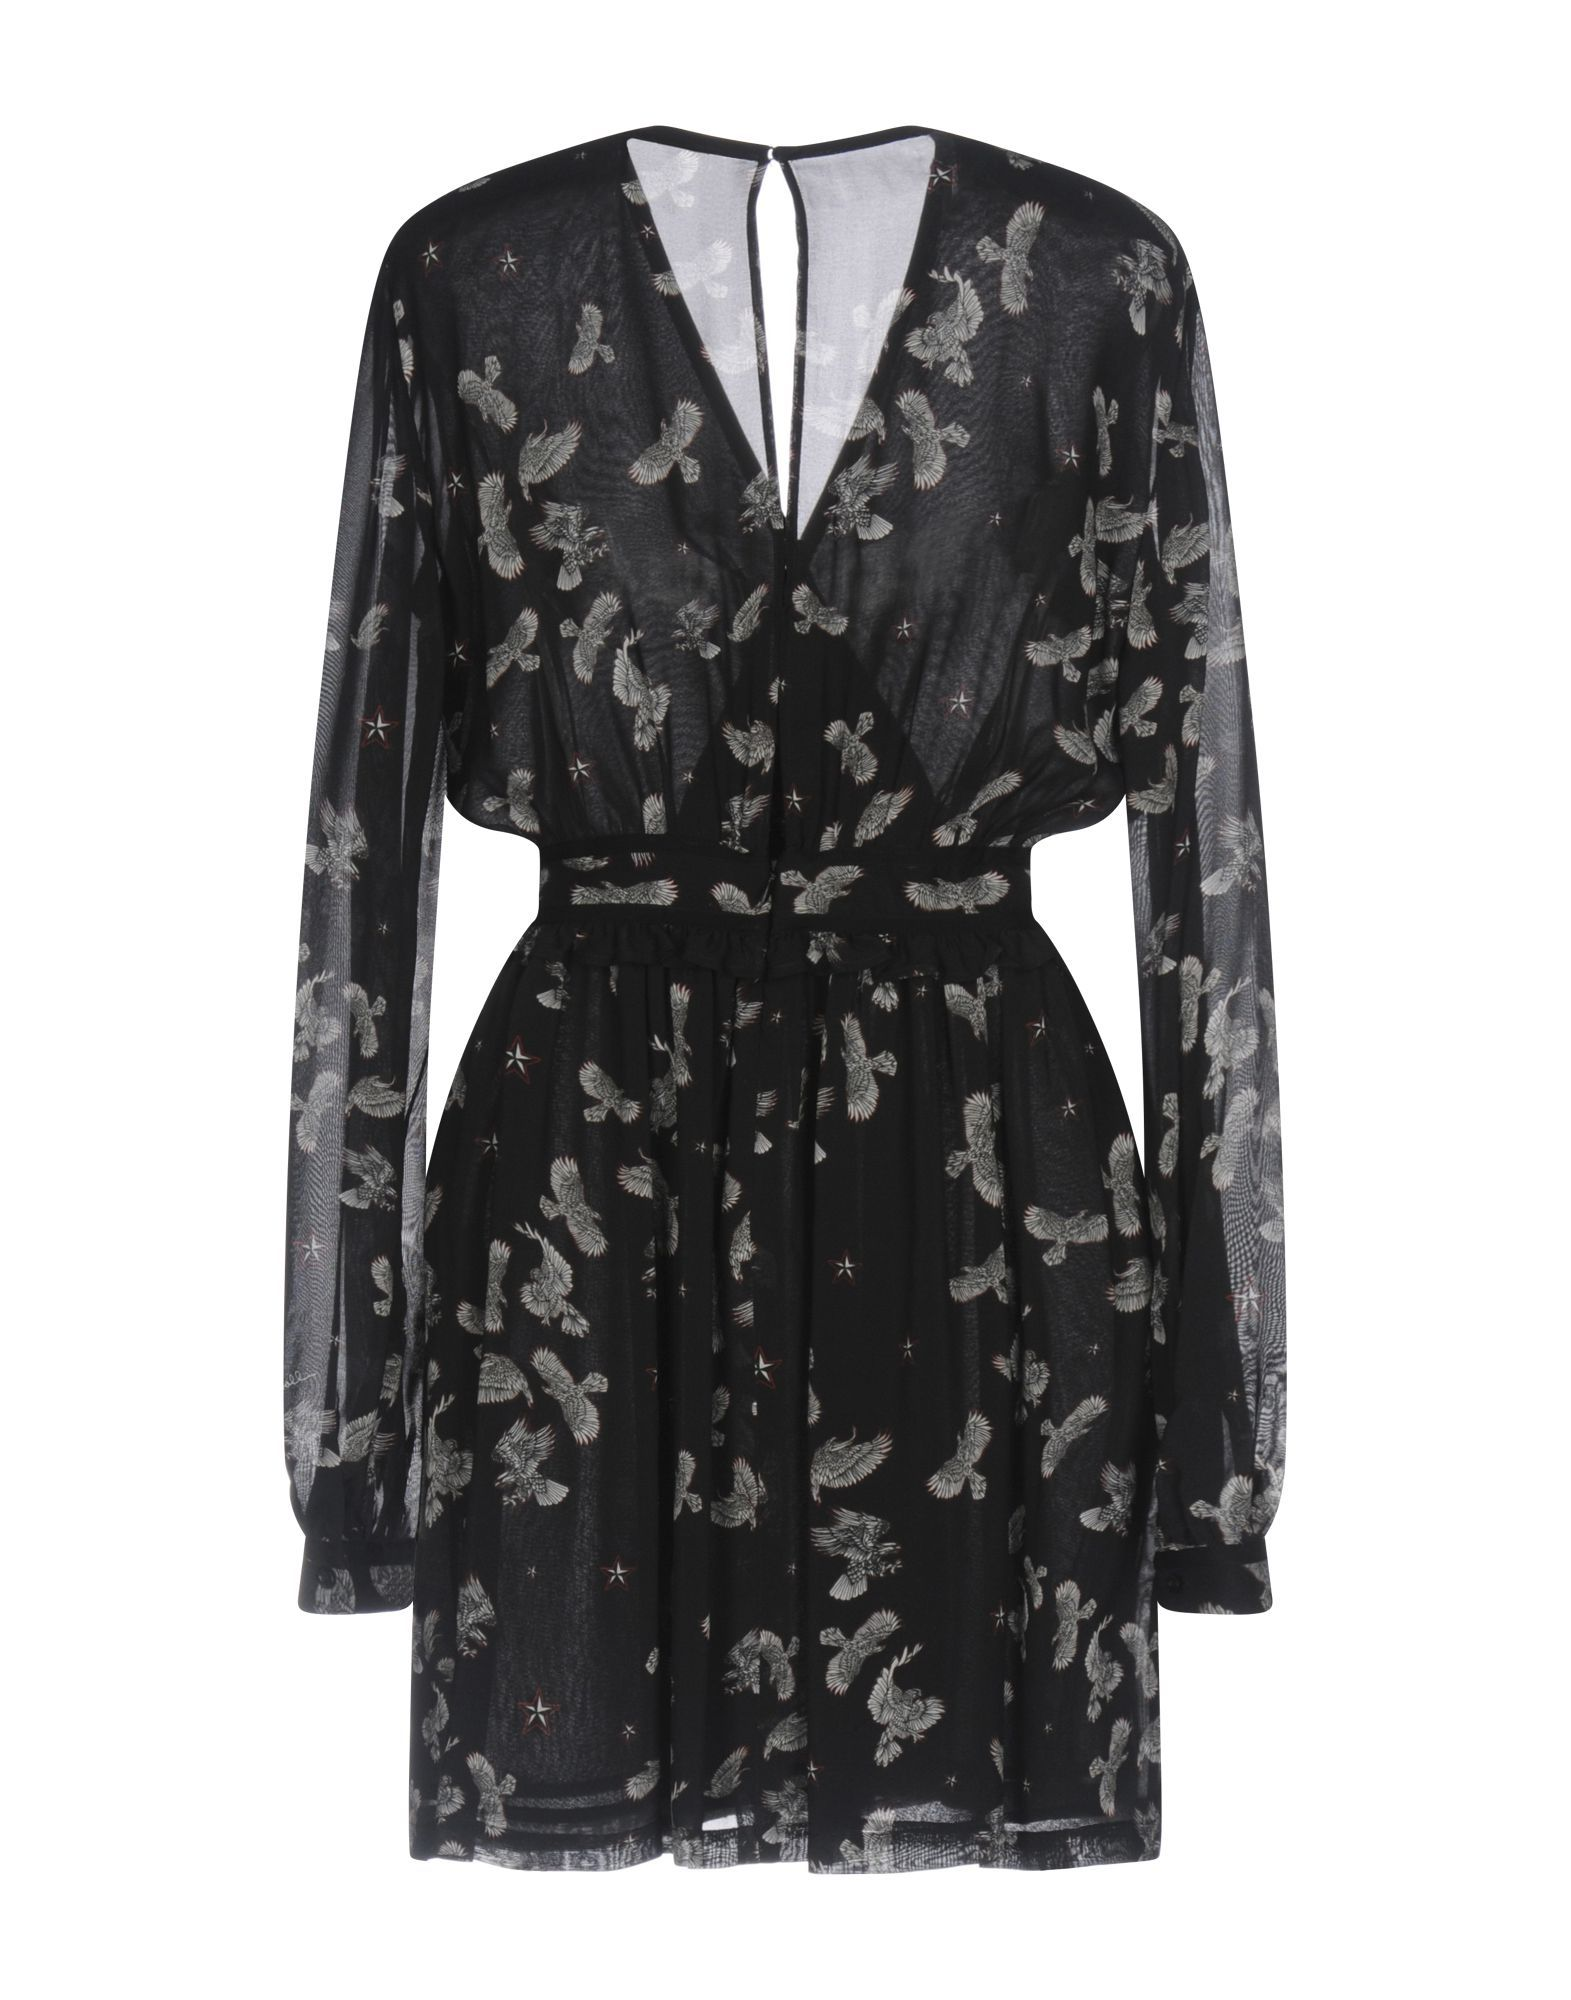 Just Cavalli Black Print Long Sleeve Short Dress